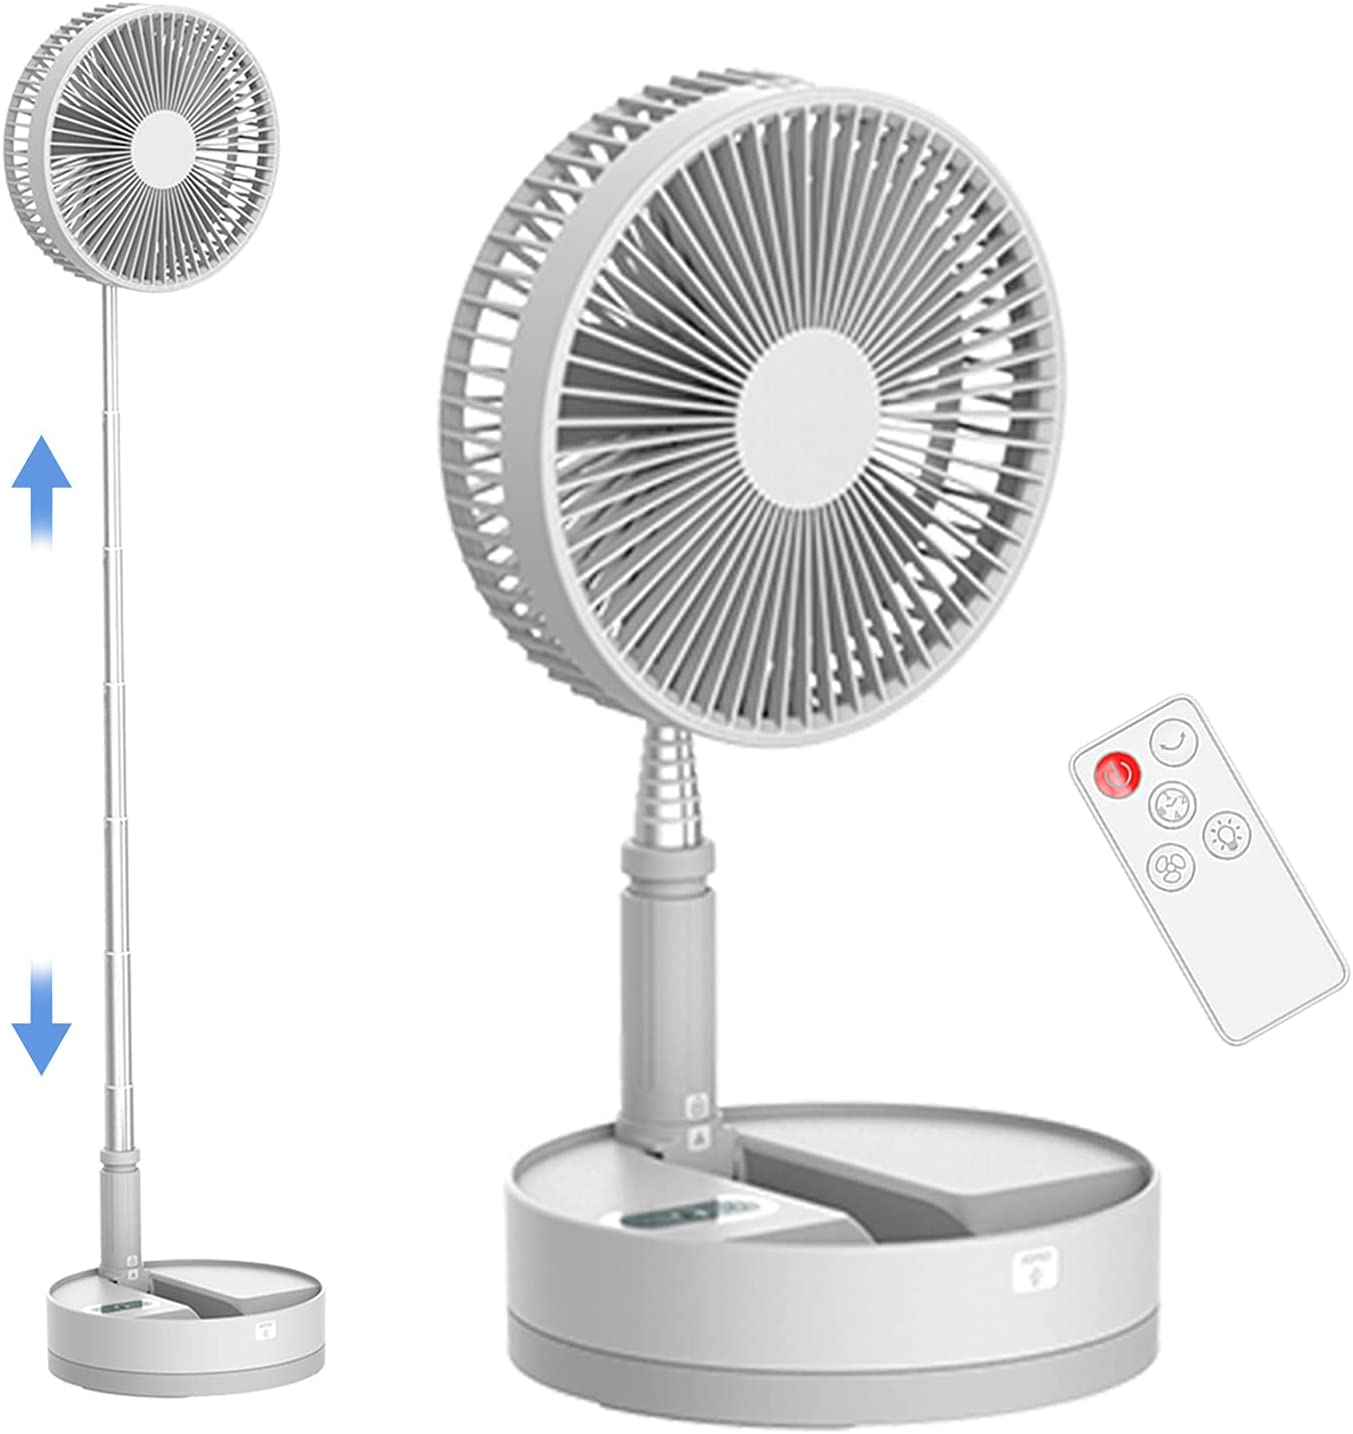 Upgrade Foldable Ultra Quiet Table Fan with LED Night light, Portable Rechargeable Automatic Oscillation Remote Control Fan with 10800mah 4-Speed Cooling Height Adjustment Silent Desktop Fan for Bedroom Office Camping